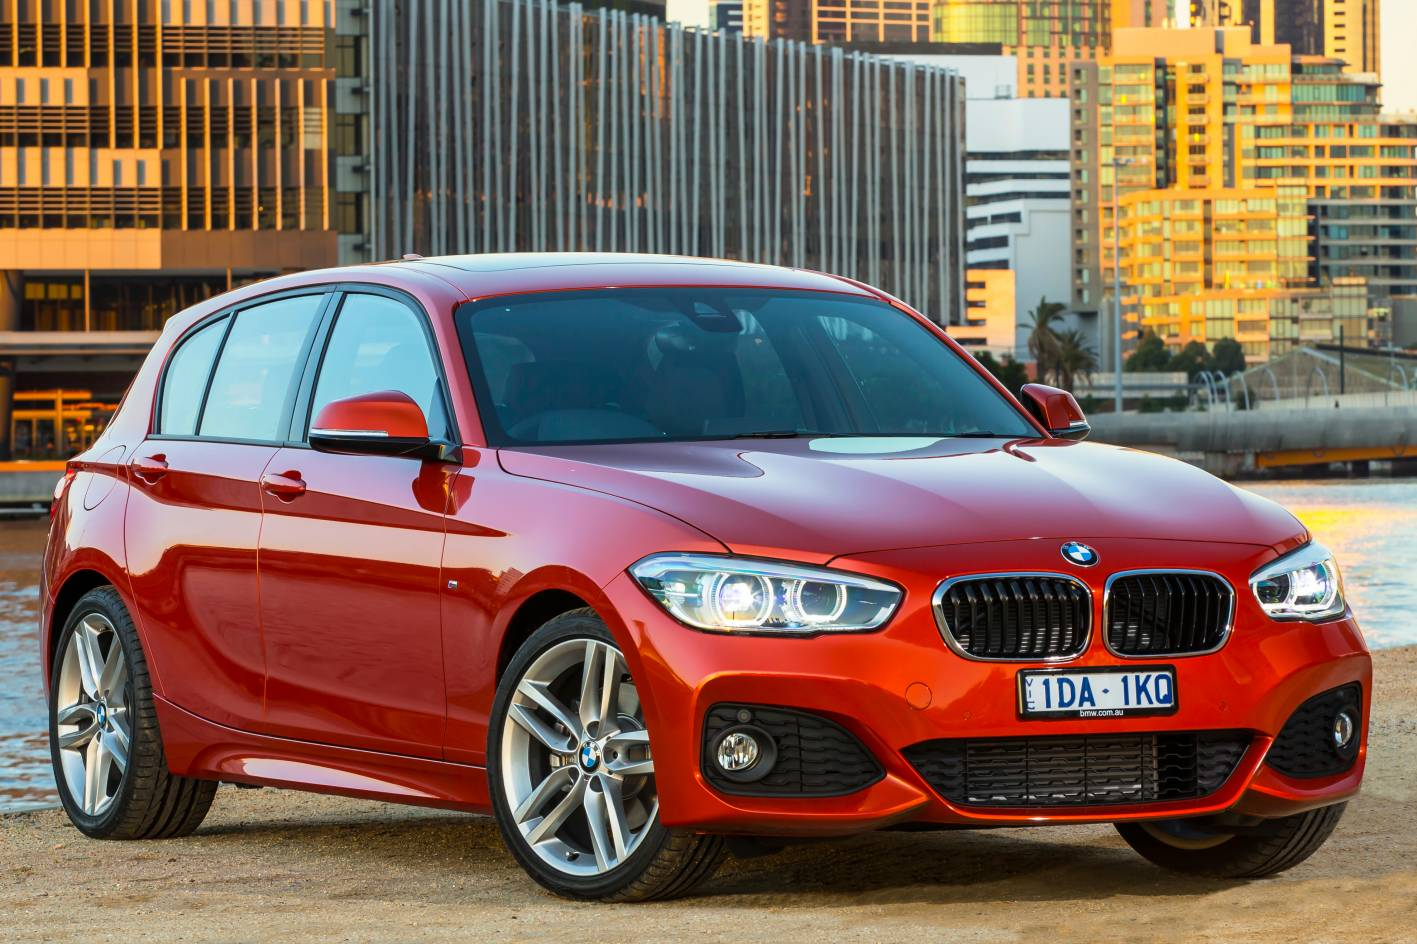 2015 BMW 1 series First Drive